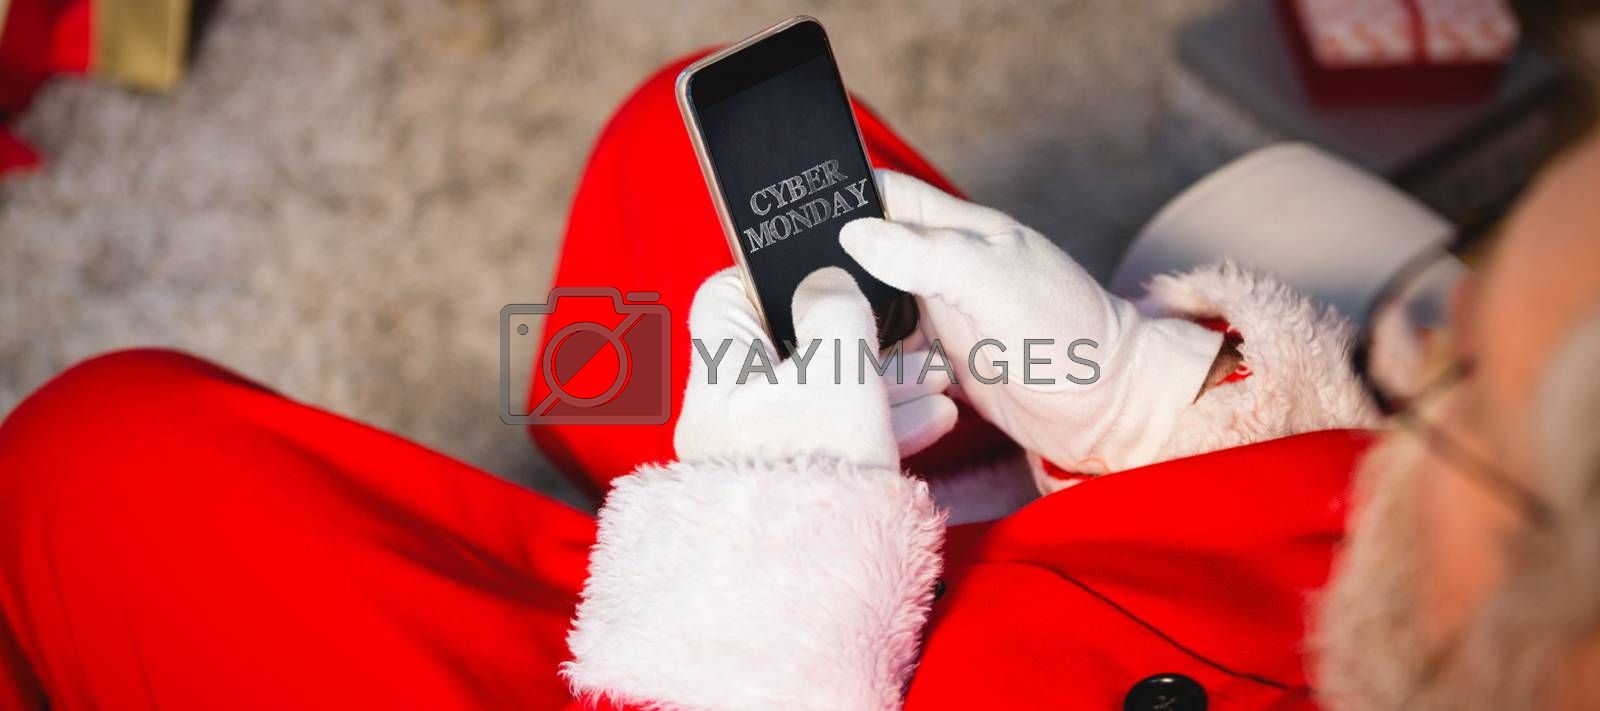 Title for celebration of cyber Monday  against santa claus using mobile phone at home